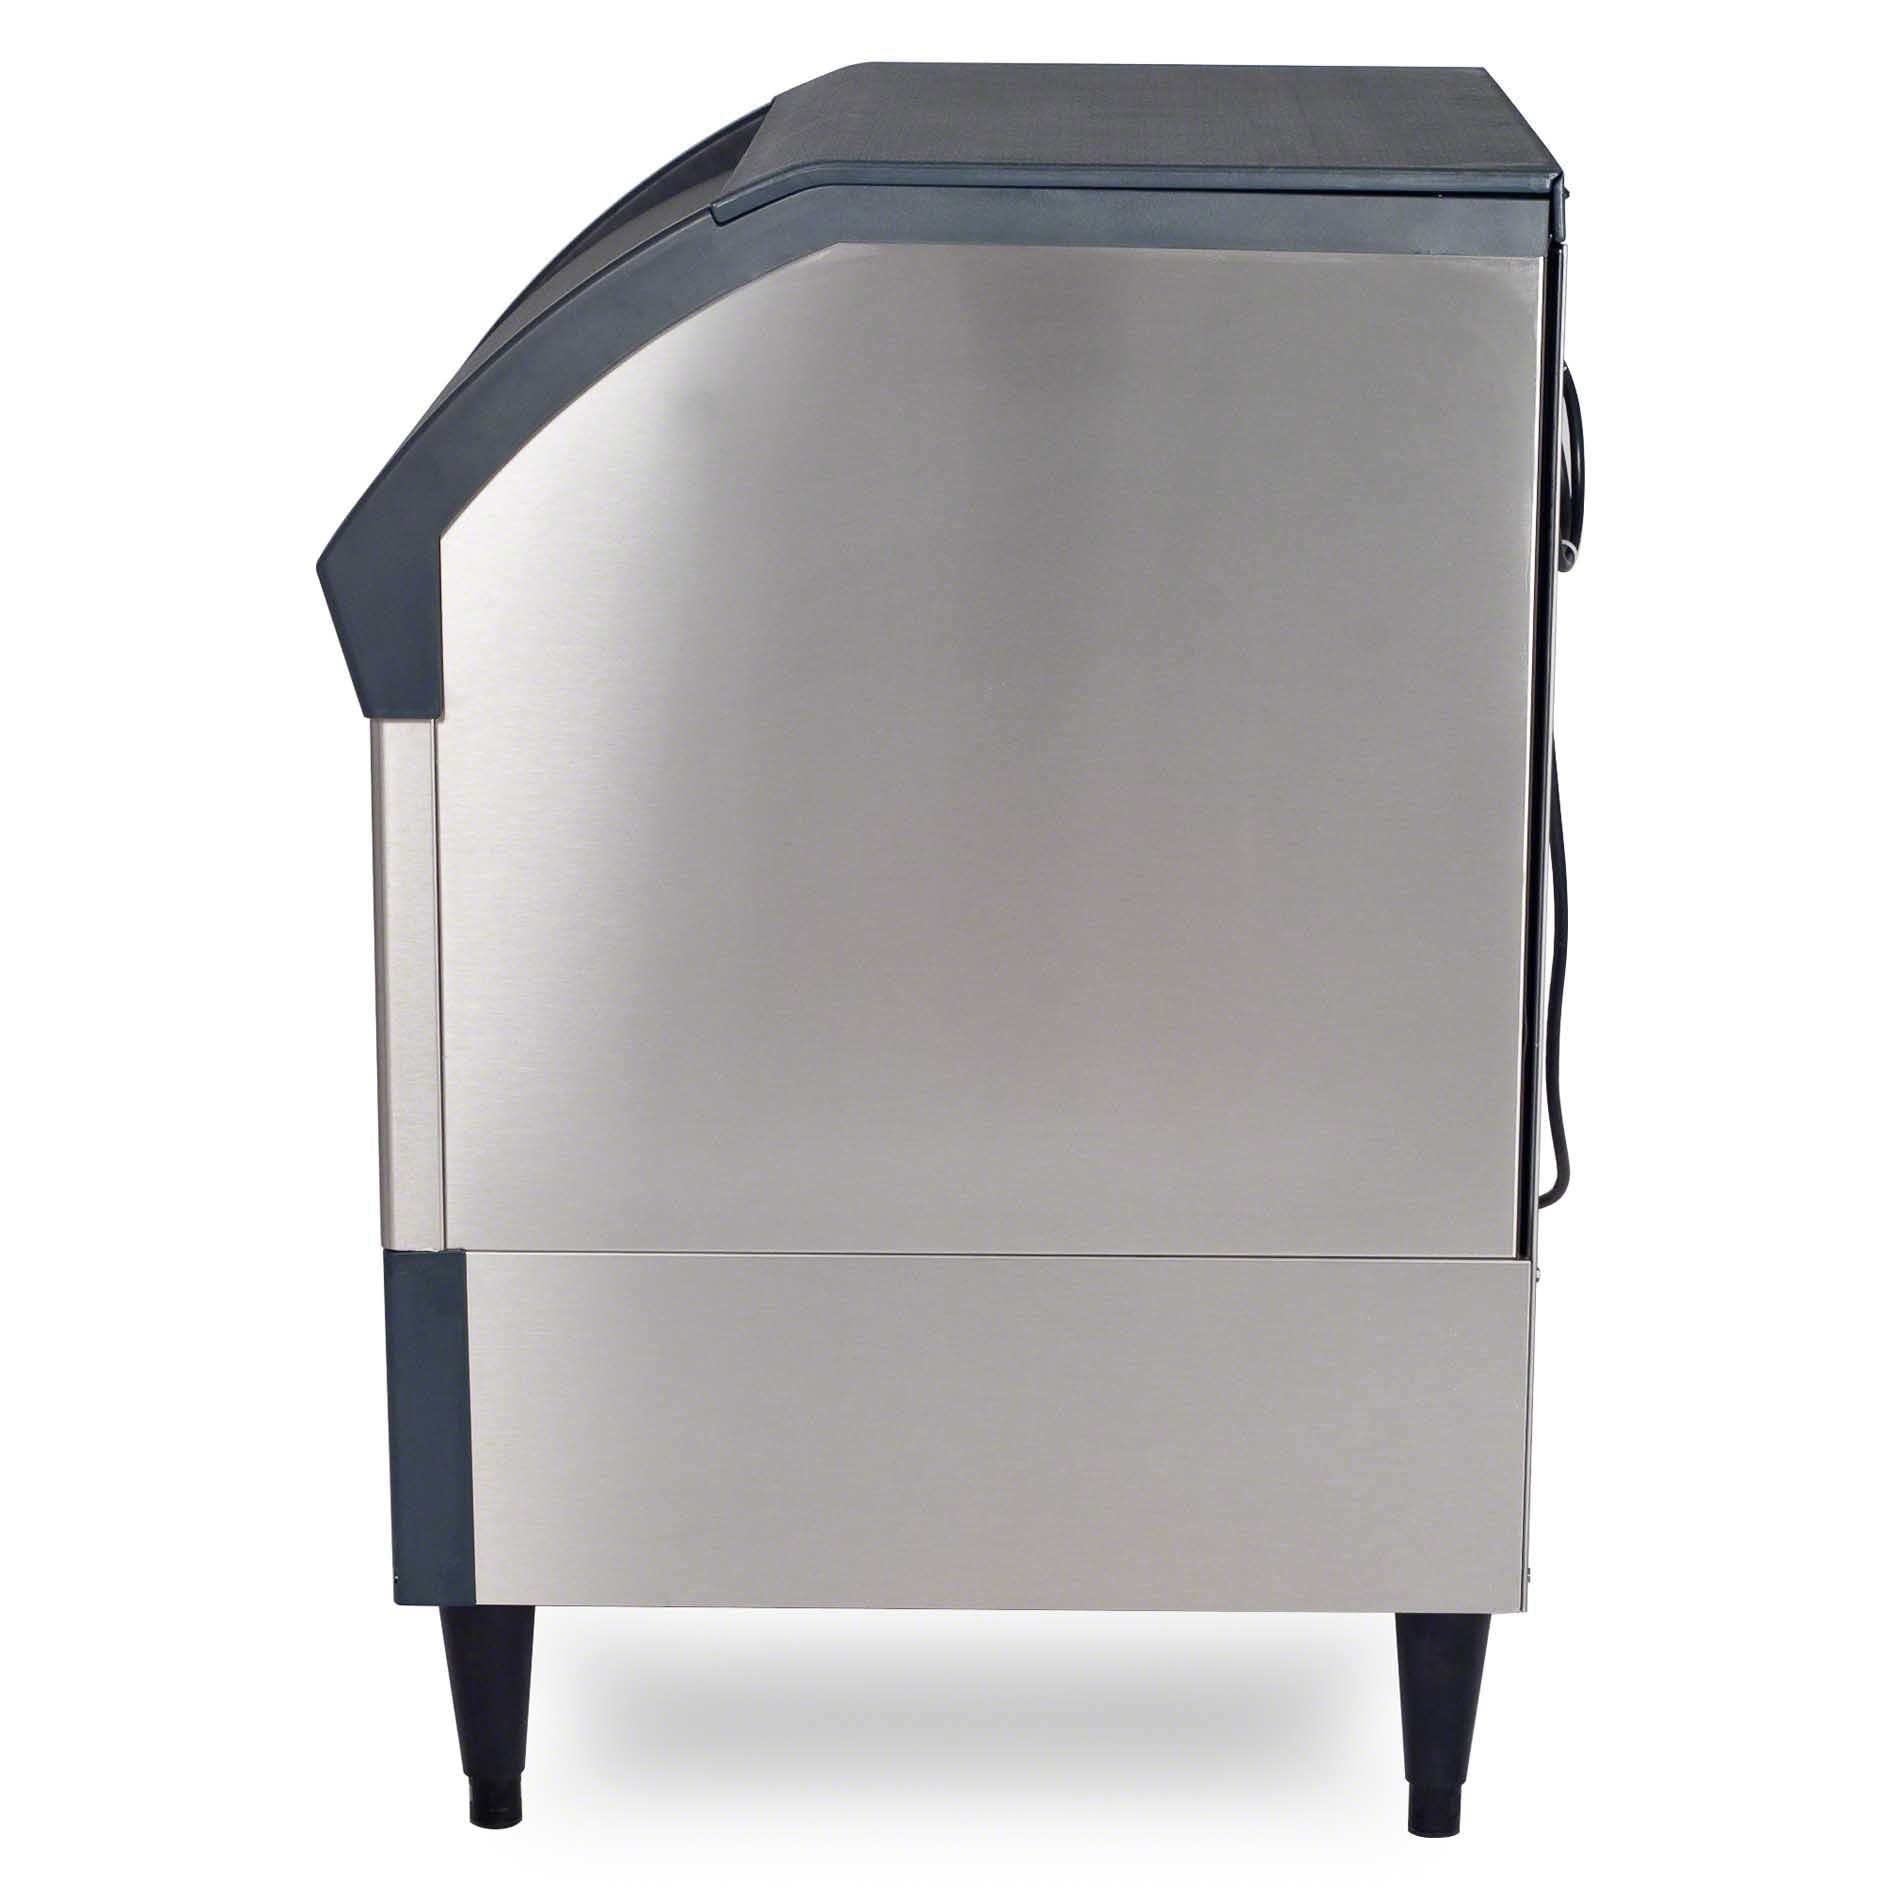 Scotsman - CU2026MA-1A 200 lb Self-Contained Cube Ice Machine - Prodigy® Series - sold by Food Service Warehouse